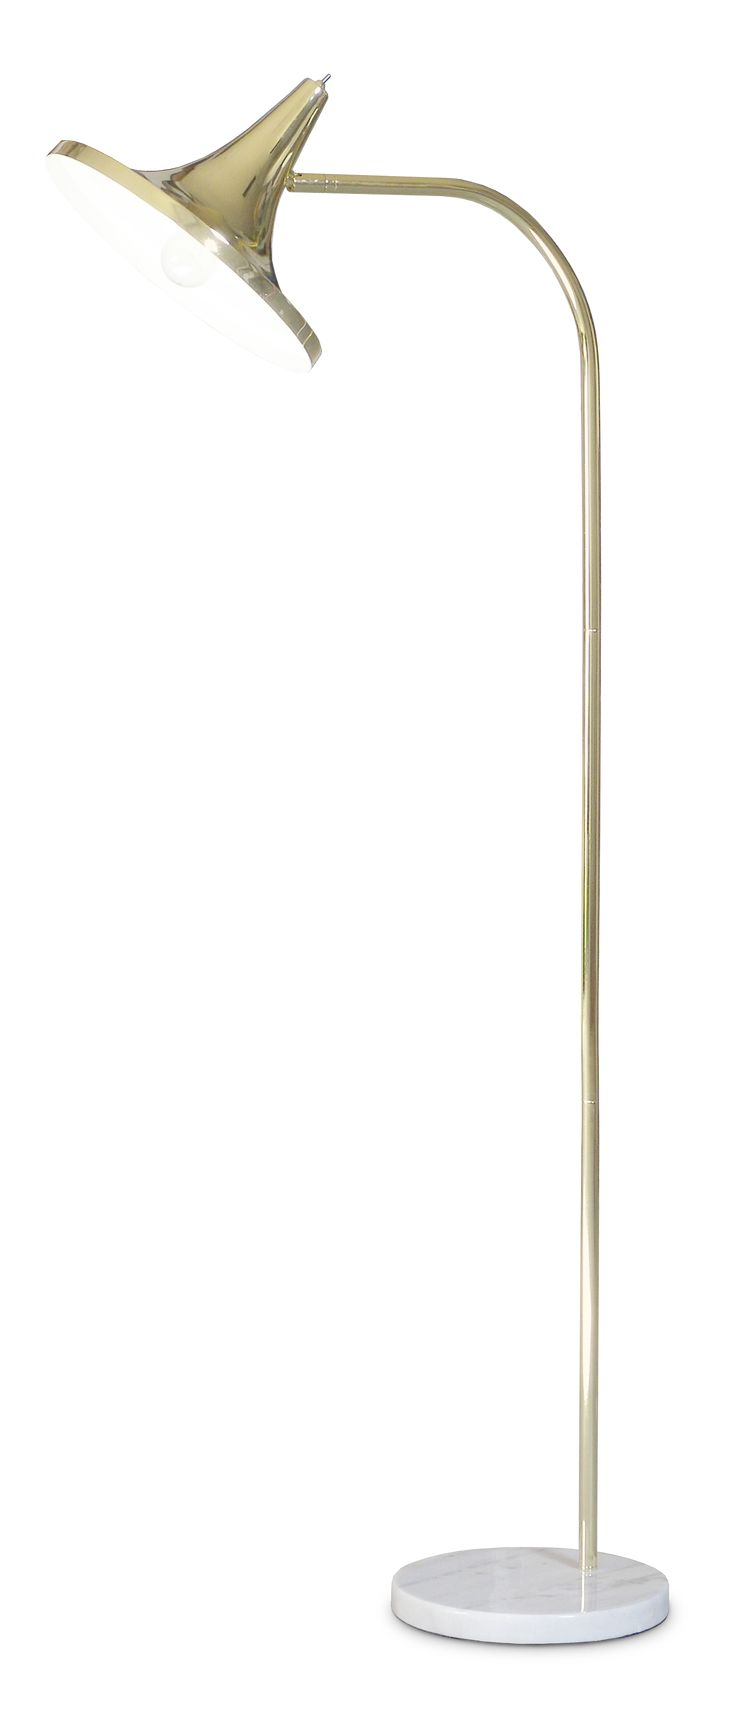 Love the brass color and shade design of the overarching floor lamp by Laura Väre.